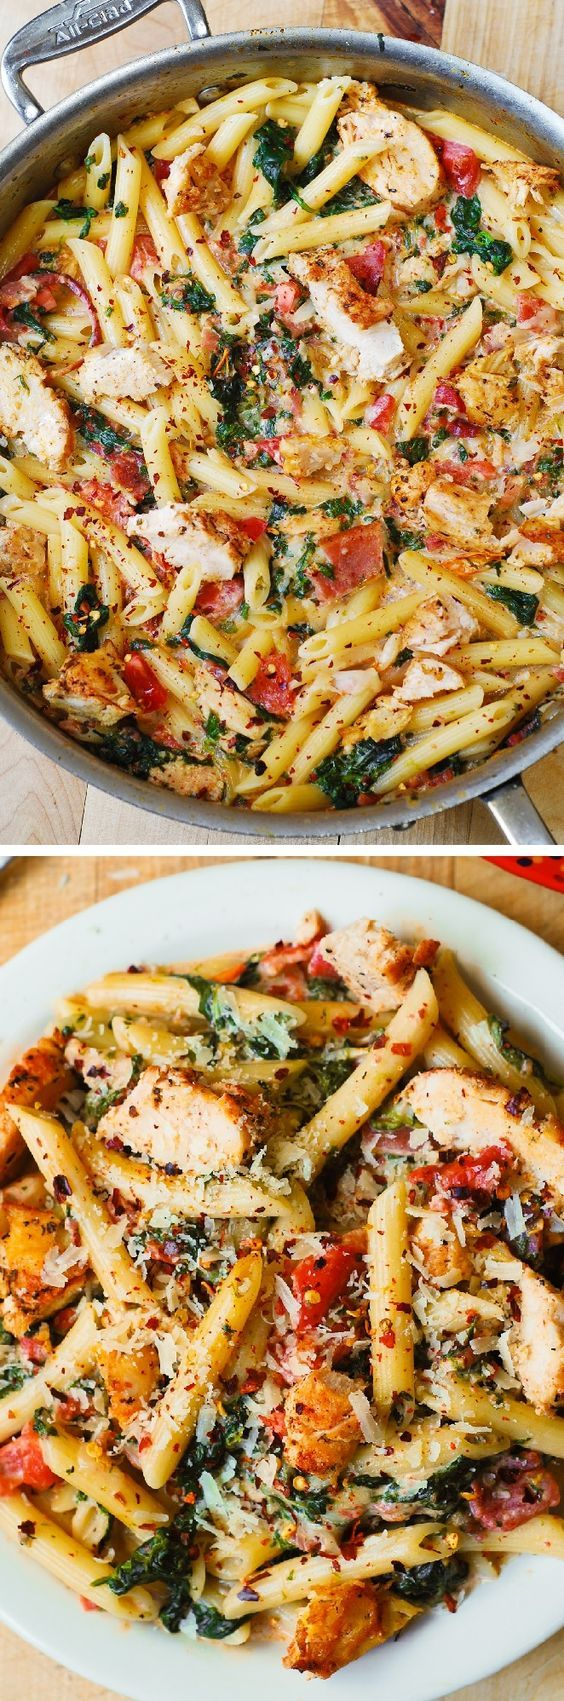 Chicken and Bacon Pasta with Spinach and Tomatoes in Garlic Cream Sauce – delicious creamy sauce perfectly blends together all the flavors: bacon, garlic, spices, tomatoes. via @juliasalbum More